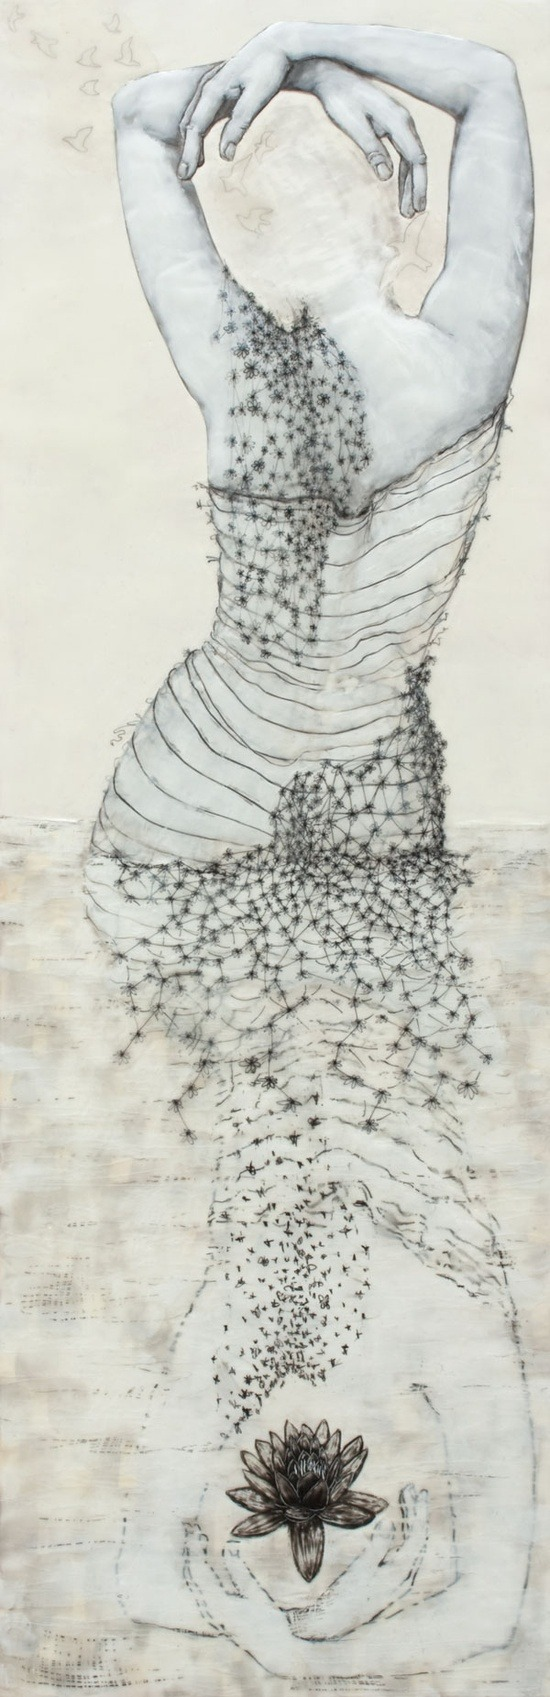 darksilenceinsuburbia:  Andrea Benson. Wader with Lotus. Encaustic on wood panel with paper and drawing.     Website